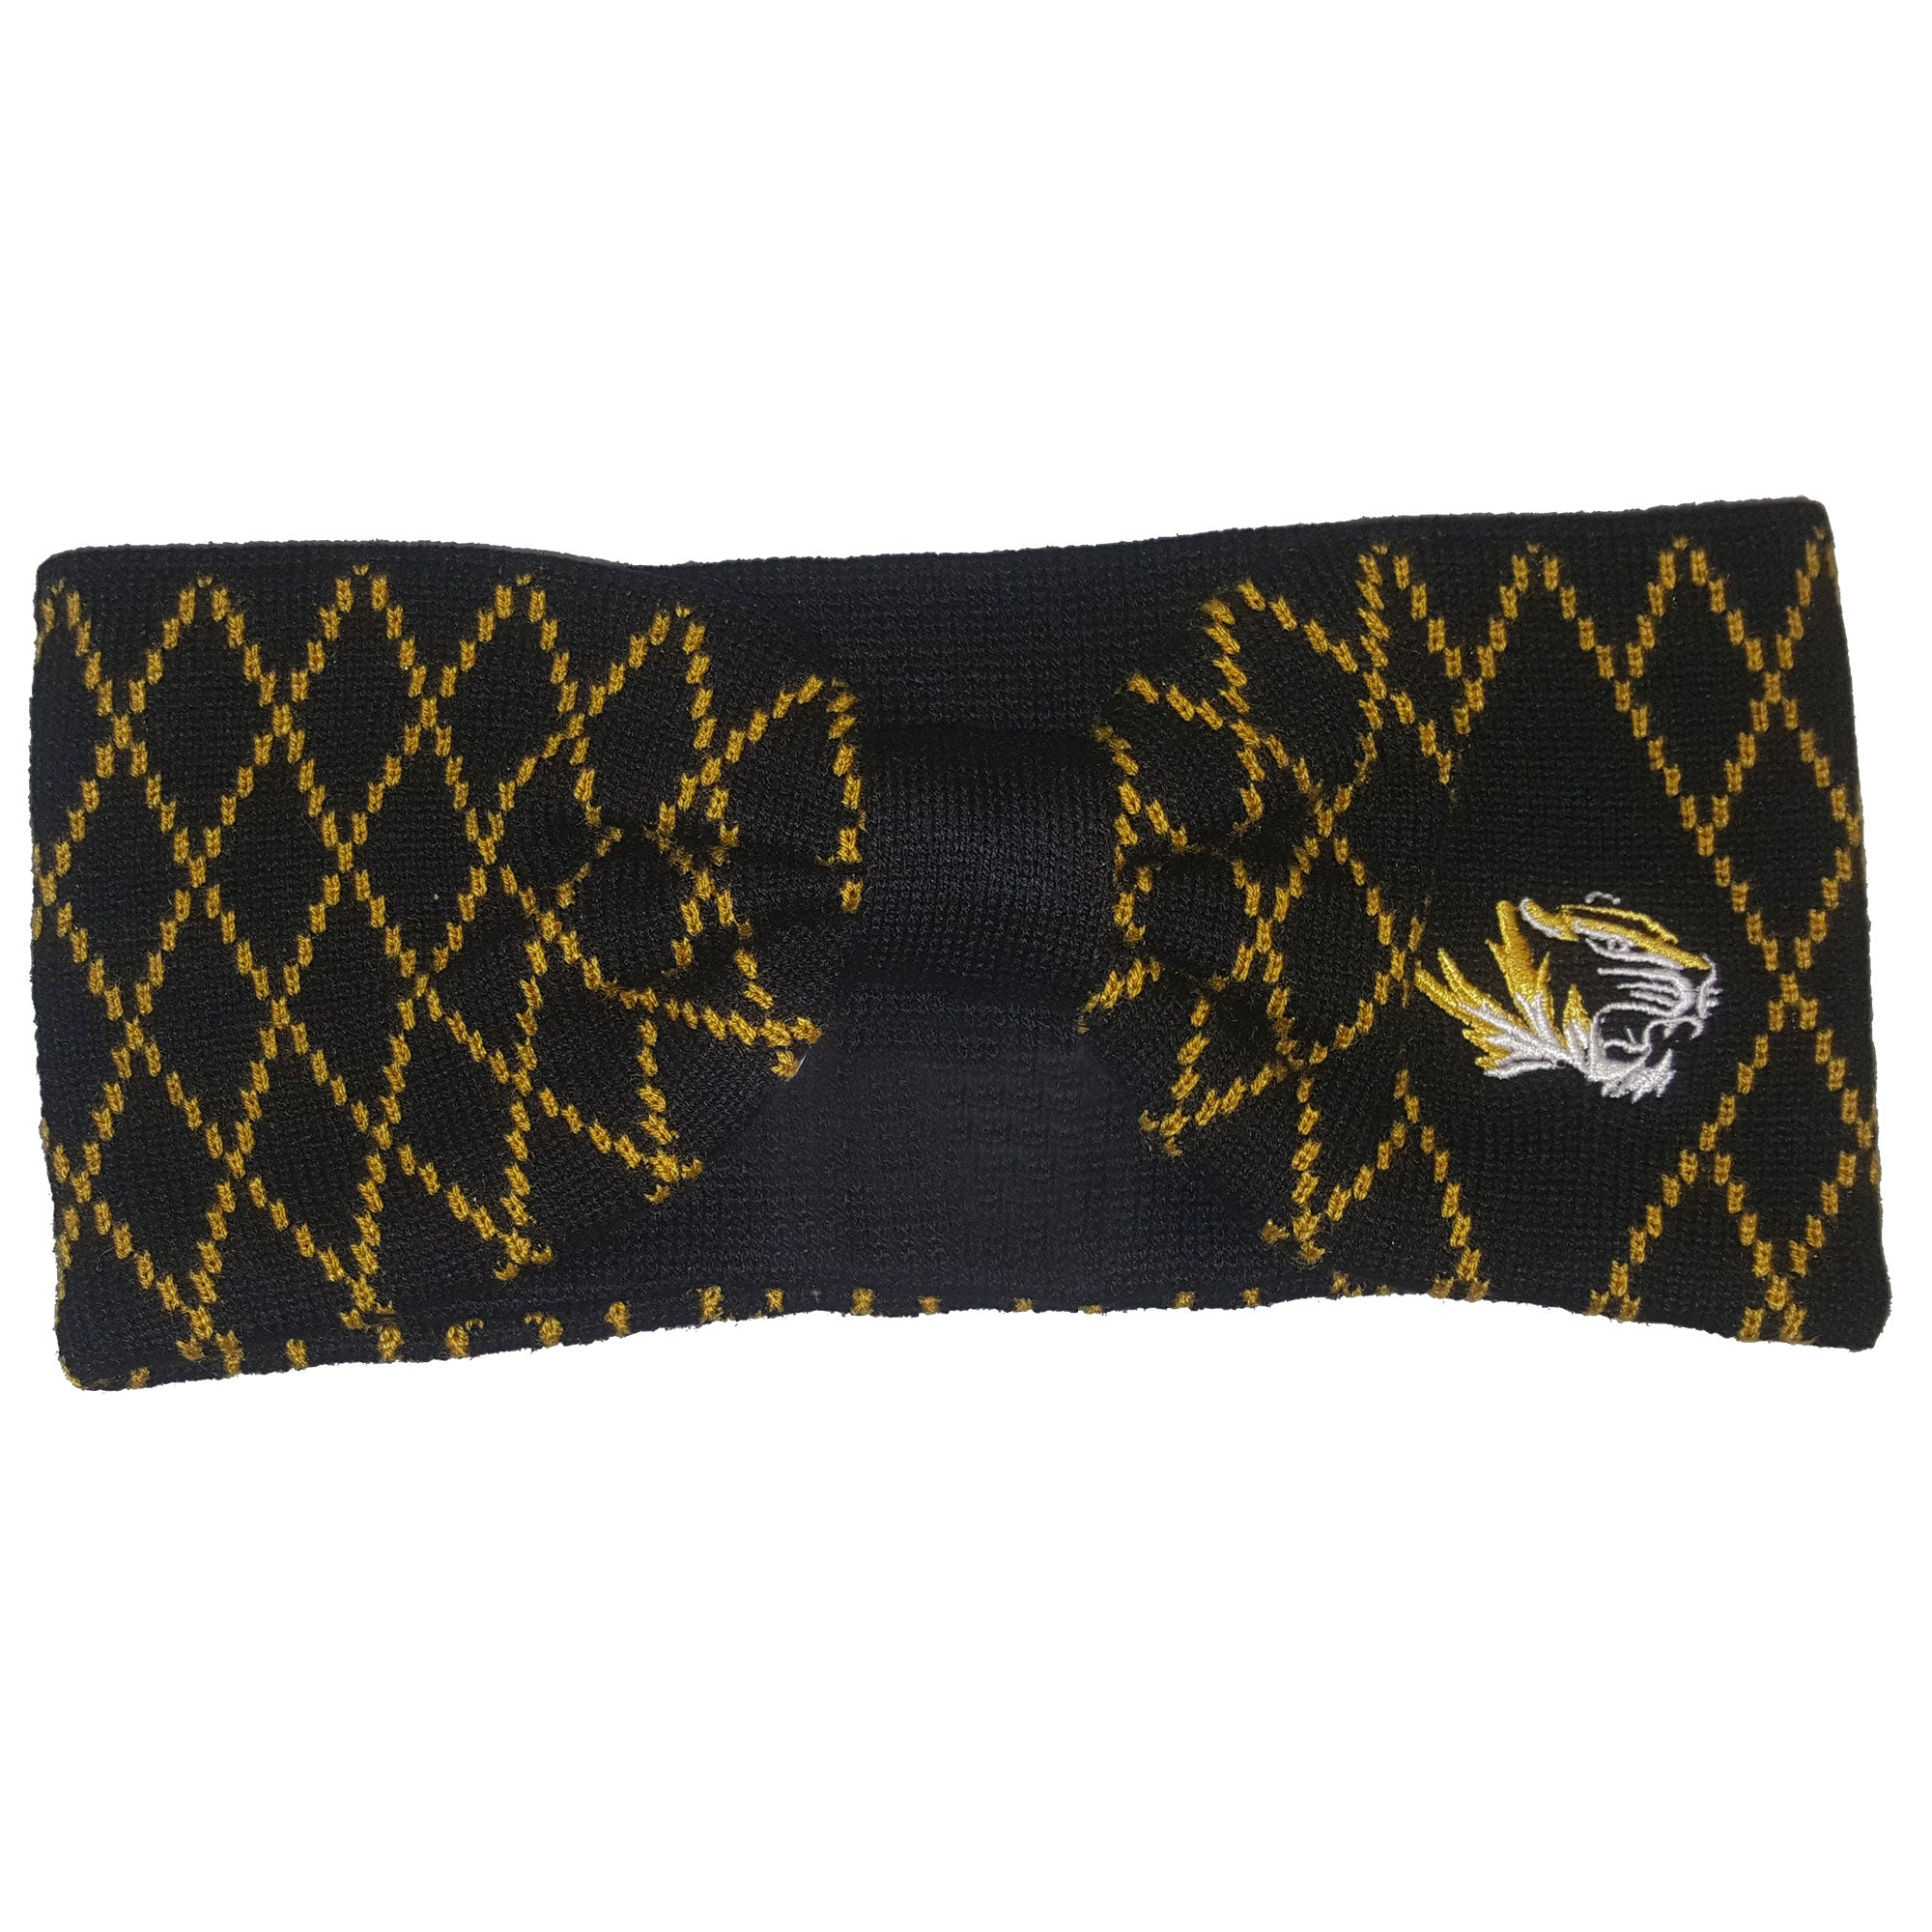 MISSOURI TIGERS KNIT HEADBAND